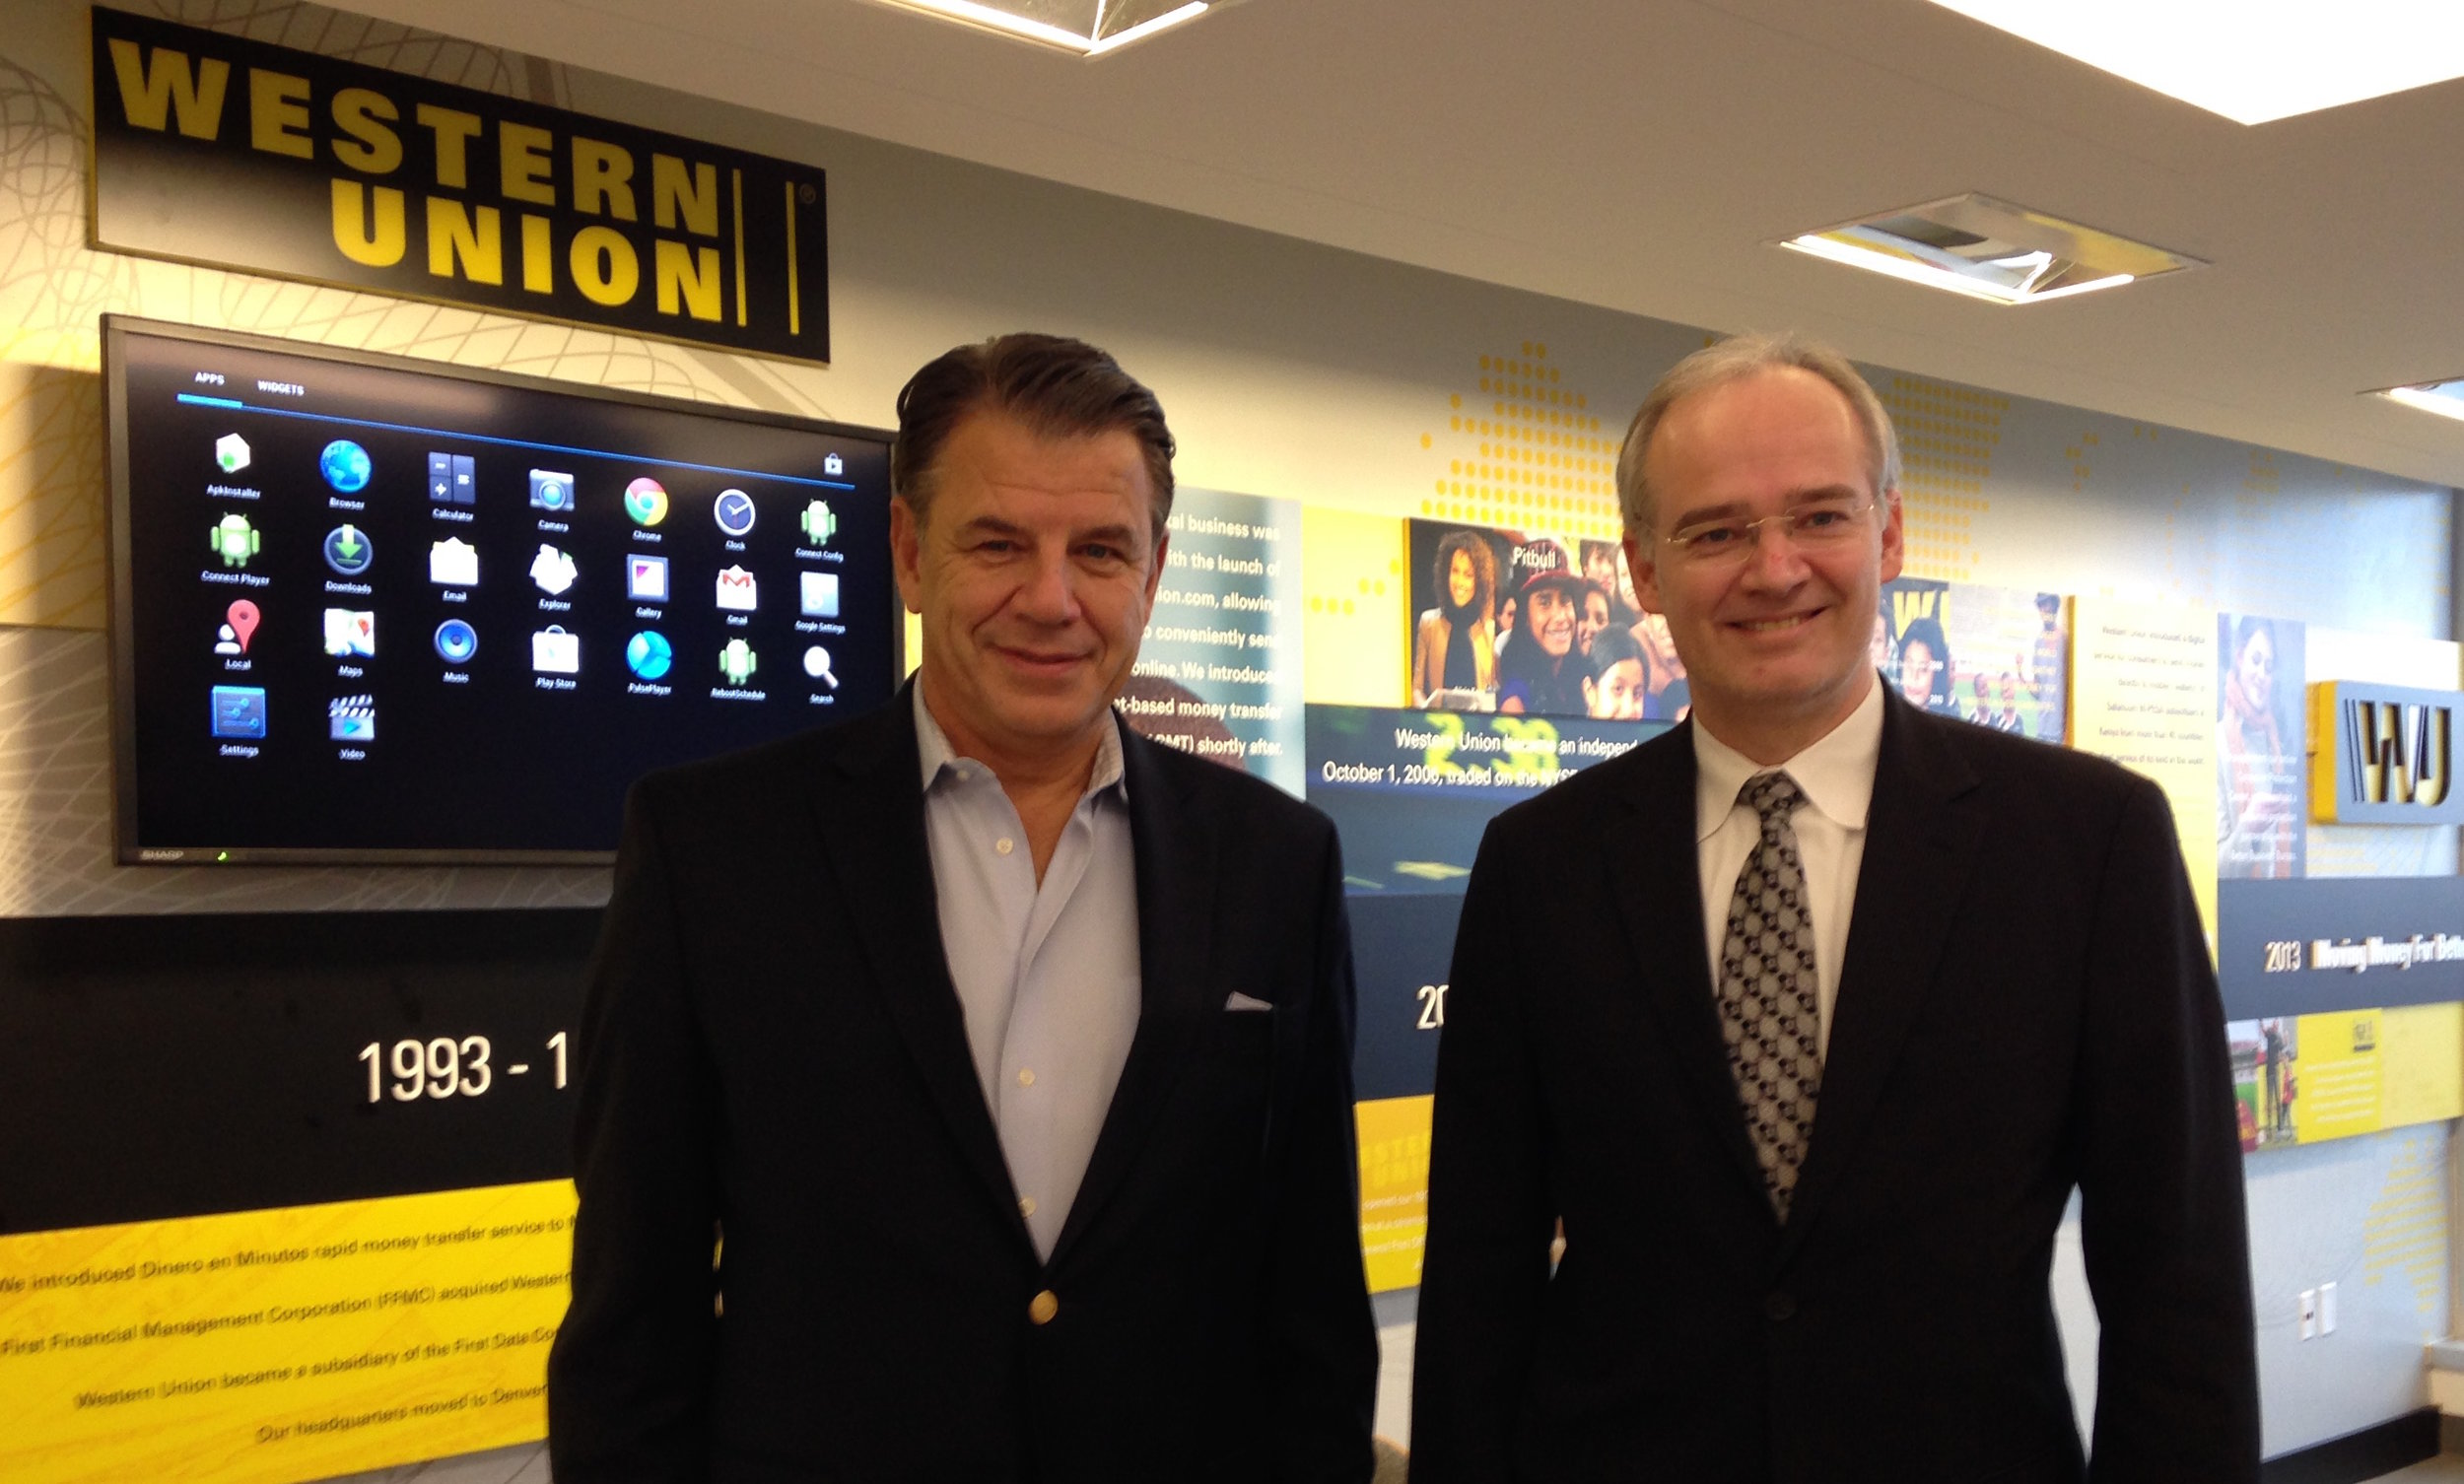 Austrian Honorary Consul Hikmet Ersek with Thorsten Eisingerich (right), the Director for Press and Information at the Austrian Embassy in Washington, DC, who conducted this interview